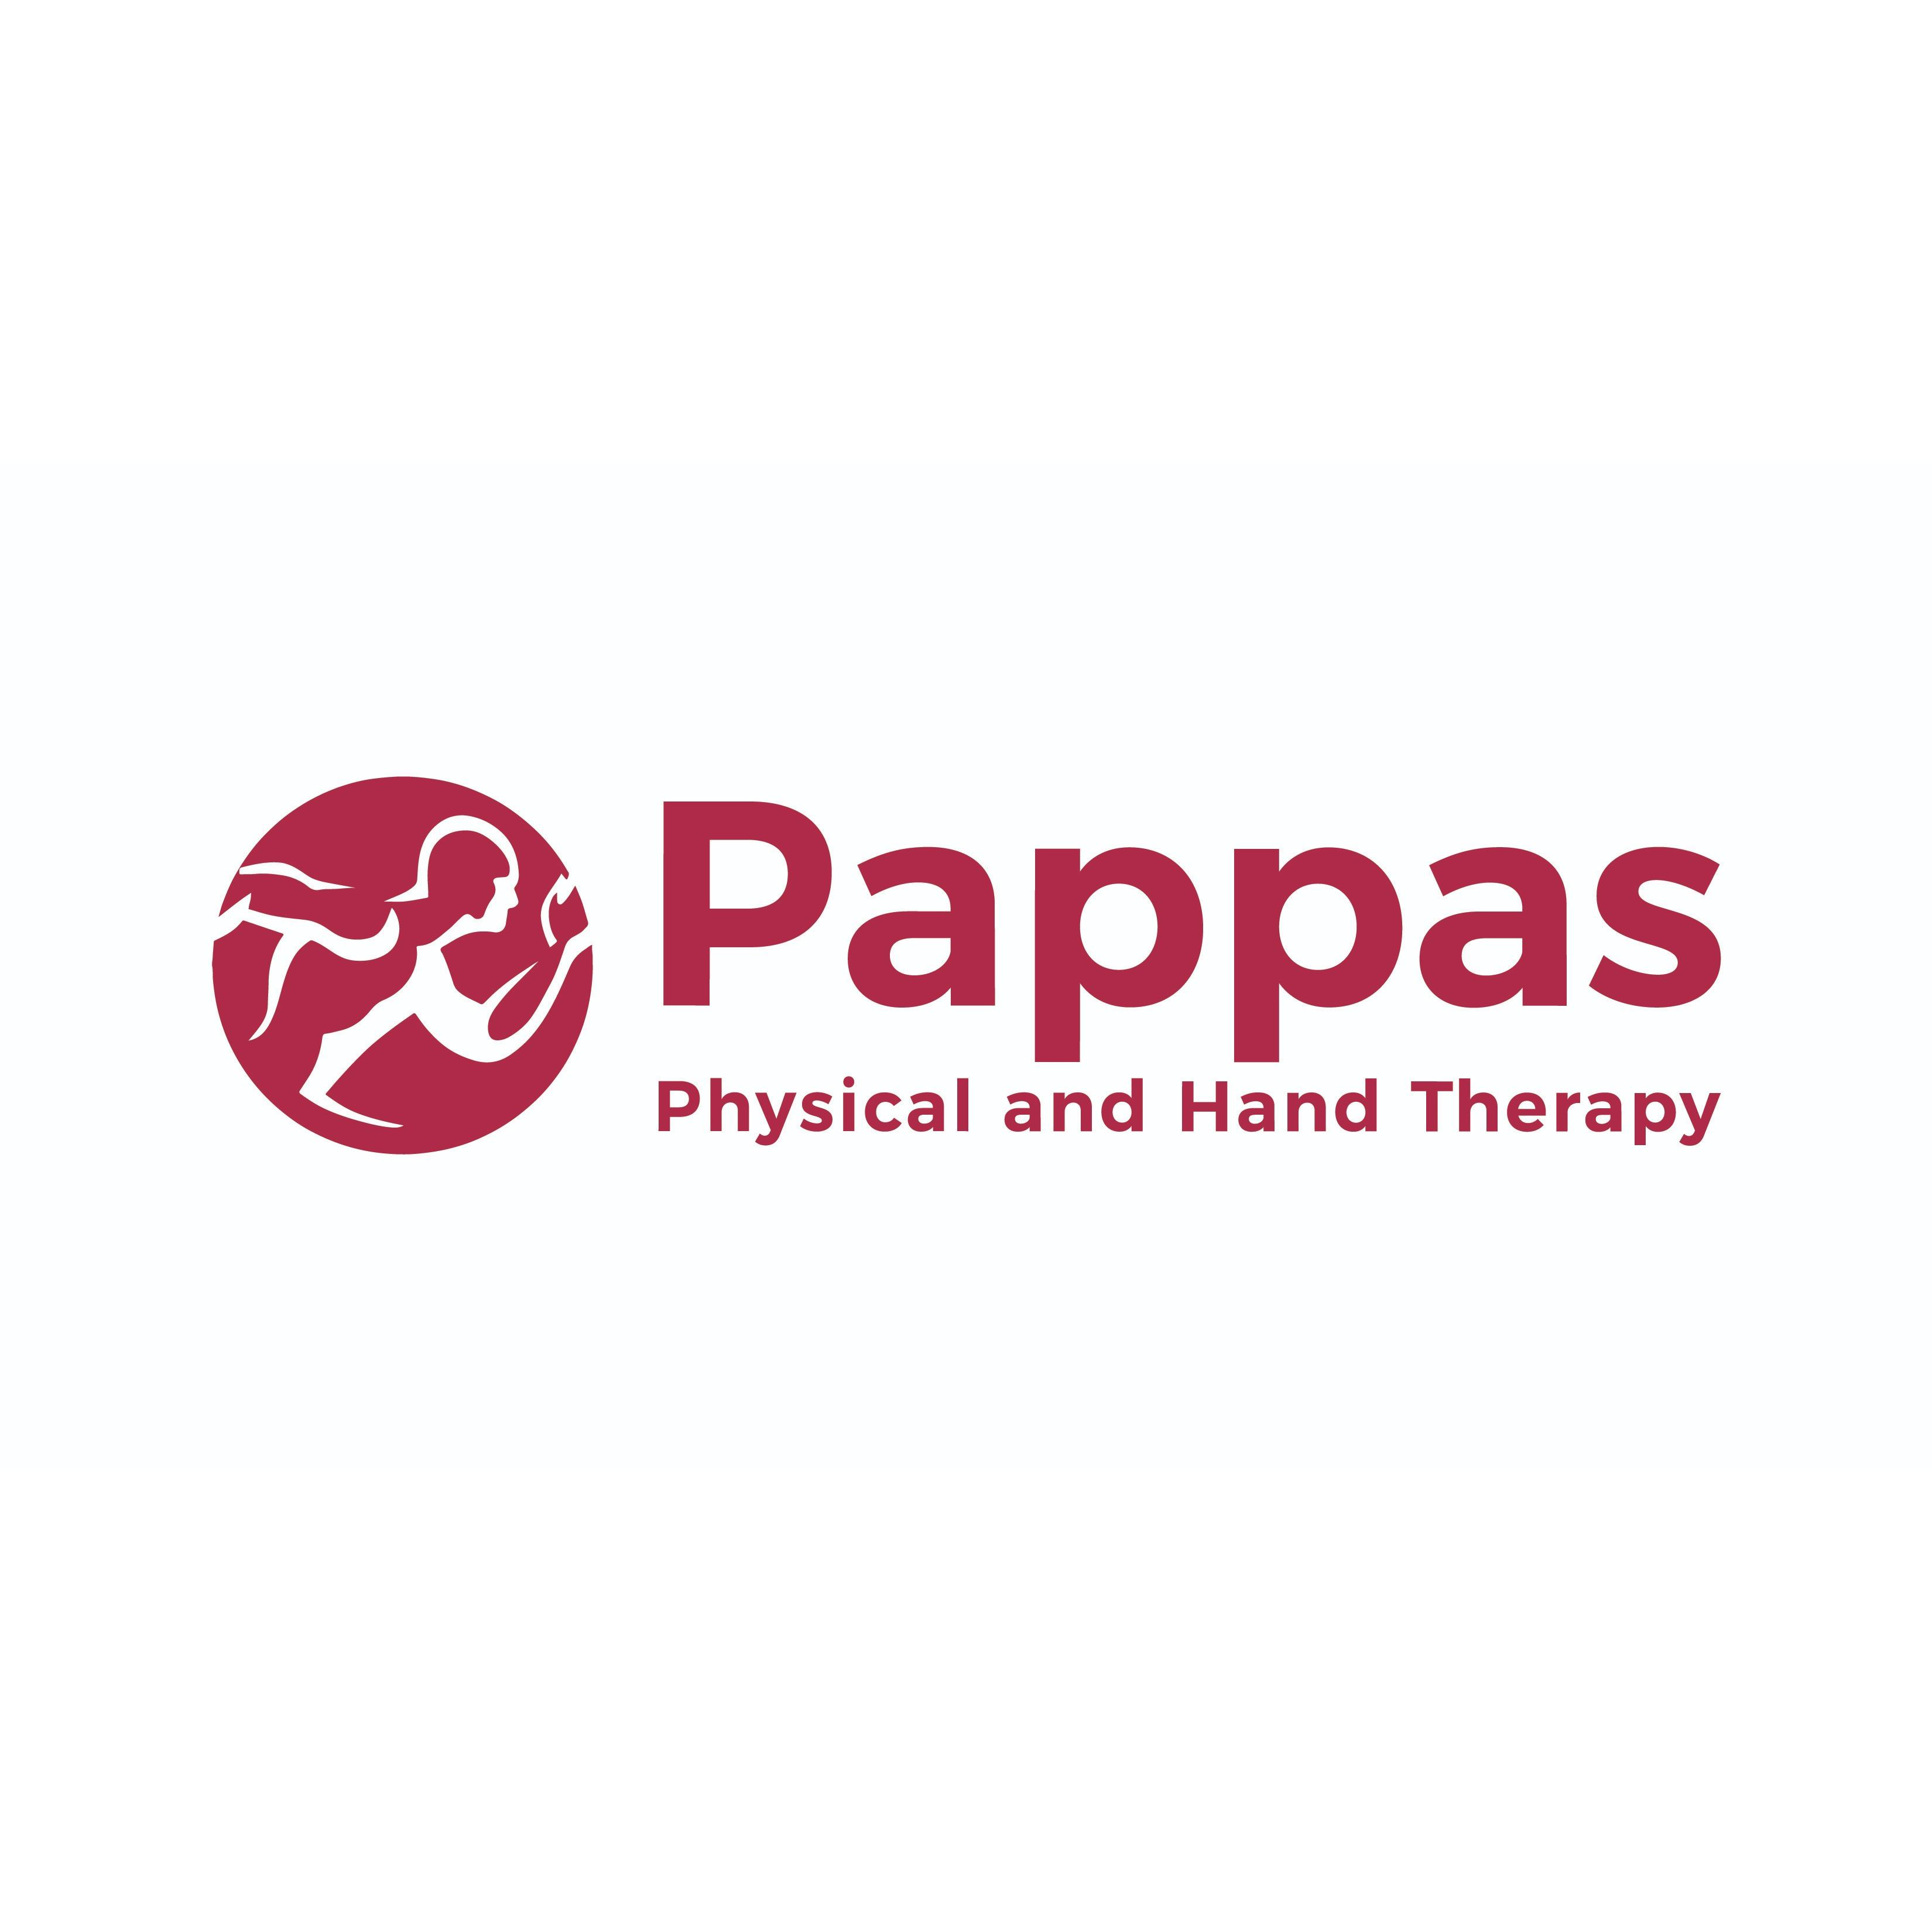 Pappas Physical and Hand Therapy